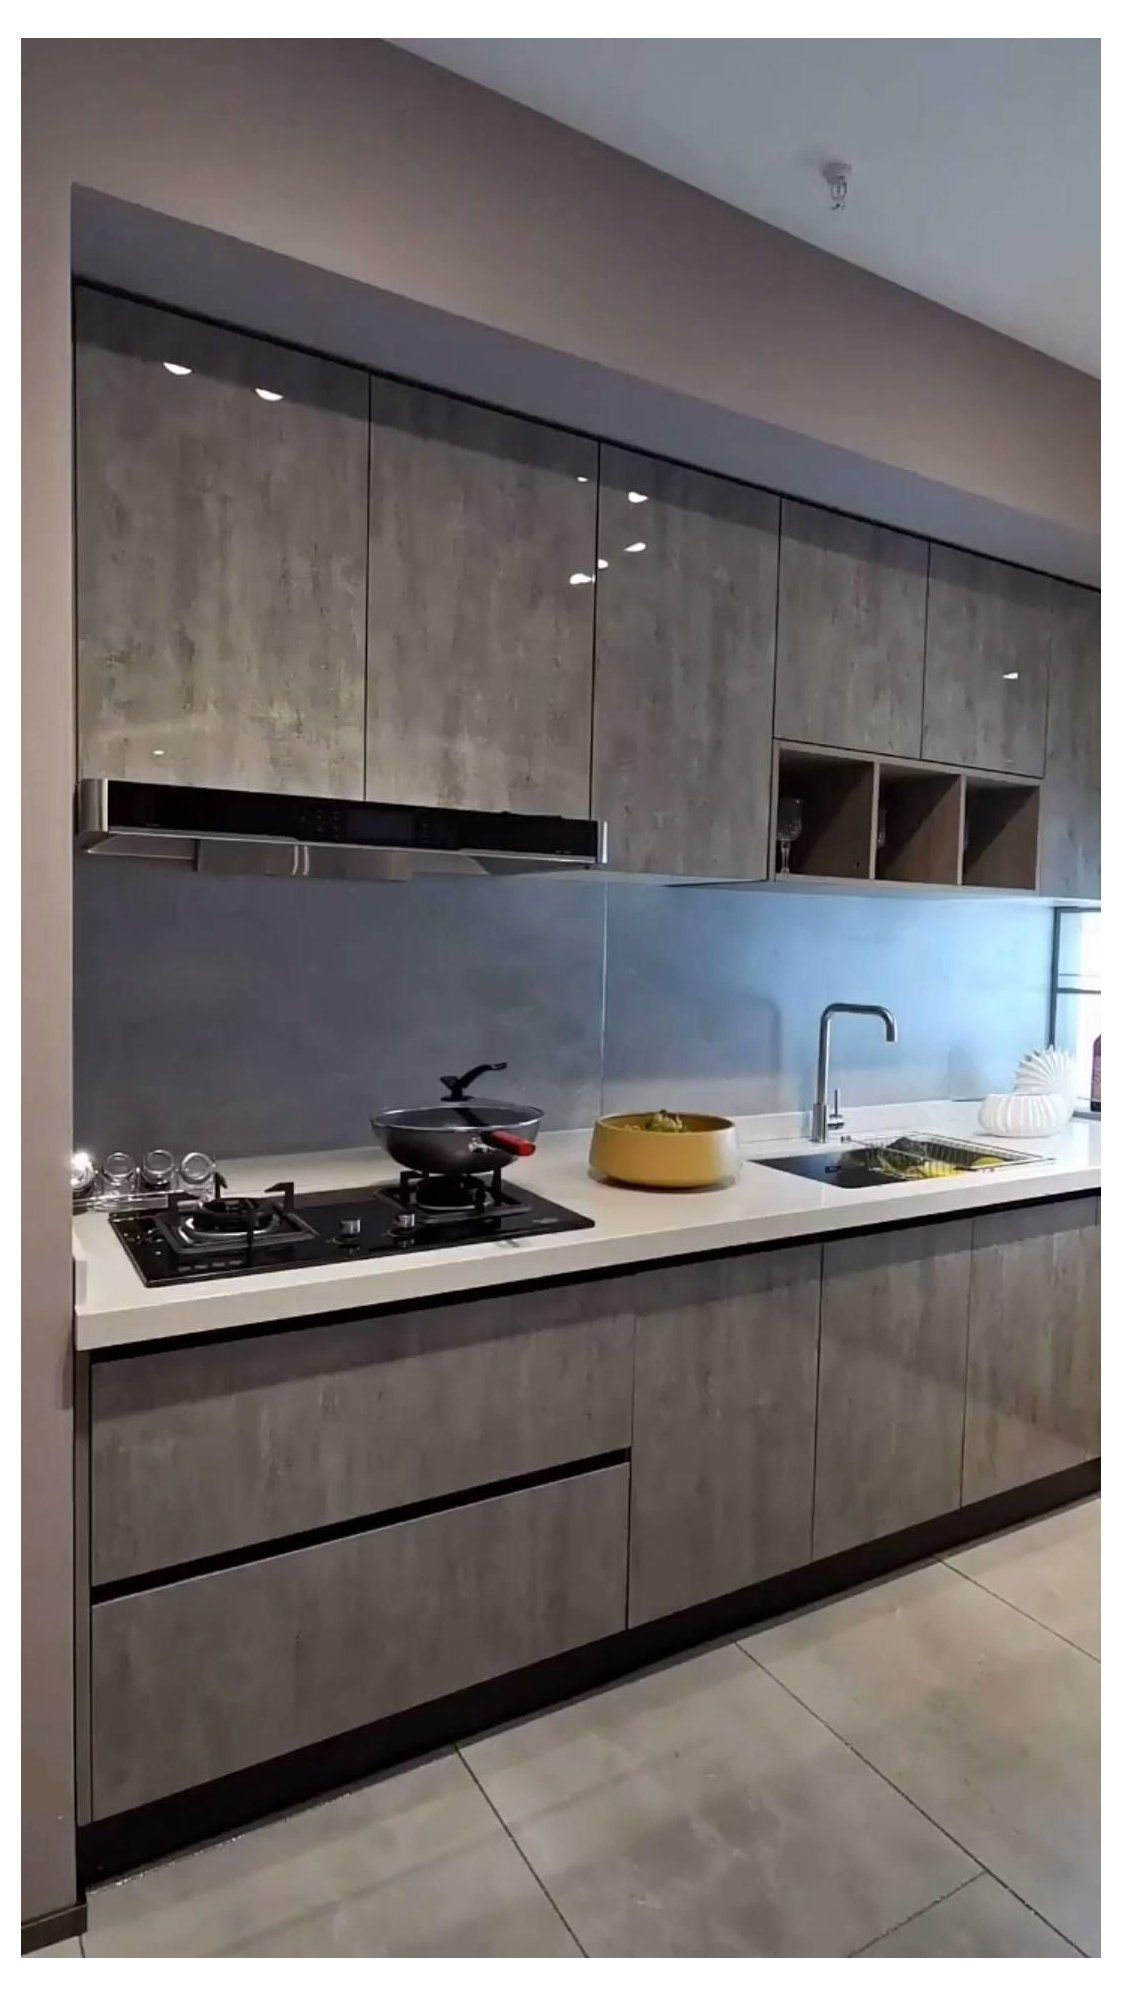 Kitchen Cabinets #kitchen #room #design #videos mutfak camı